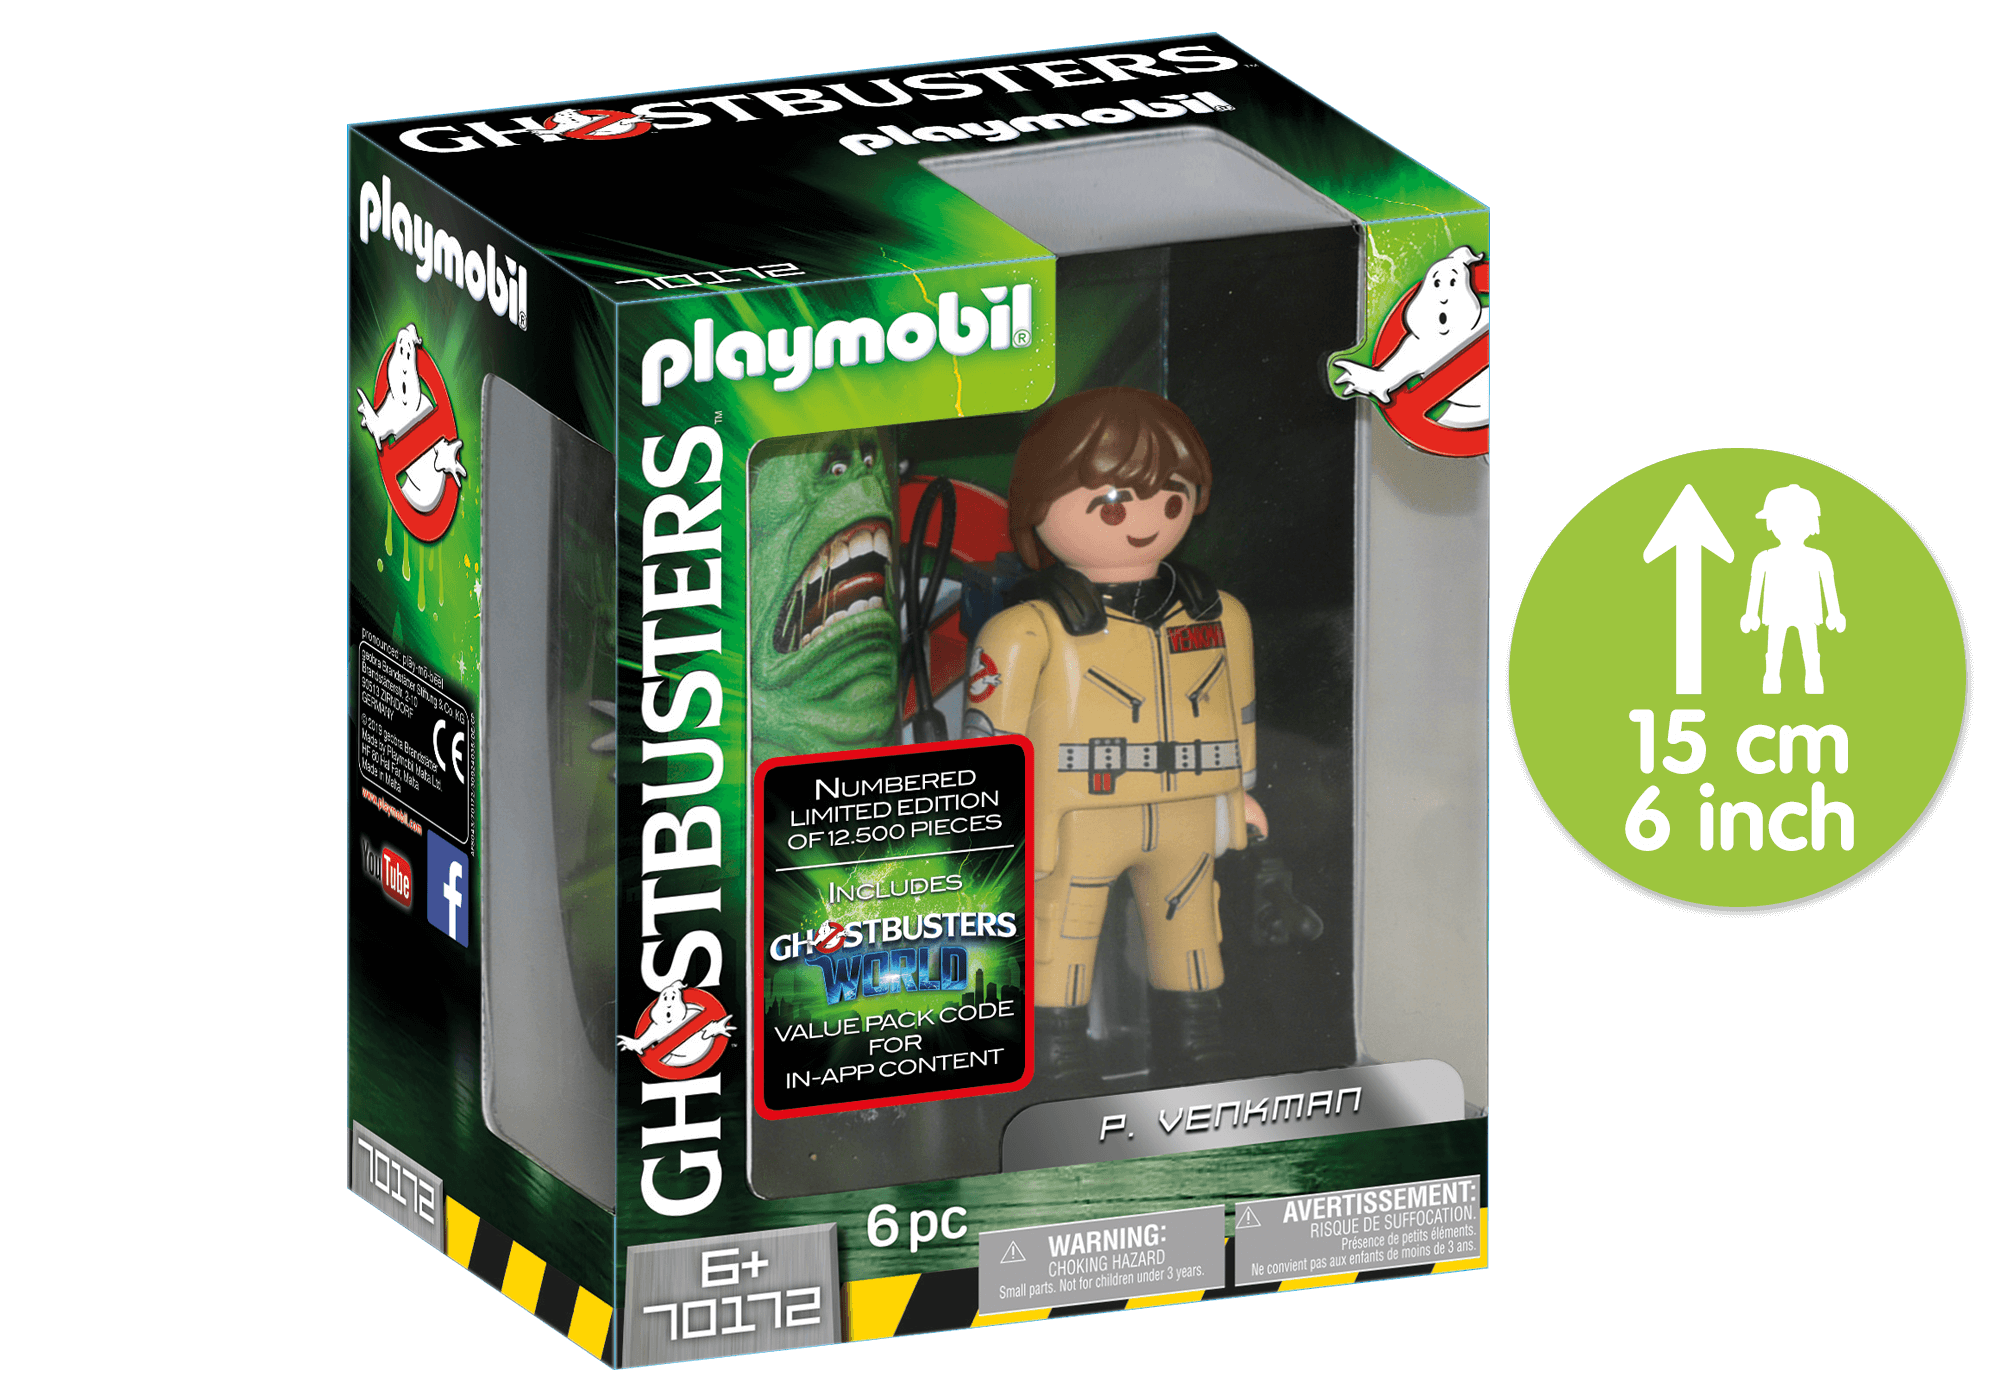 http://media.playmobil.com/i/playmobil/70172_product_detail/Ghostbusters™ Collector's Edition P. Venkman